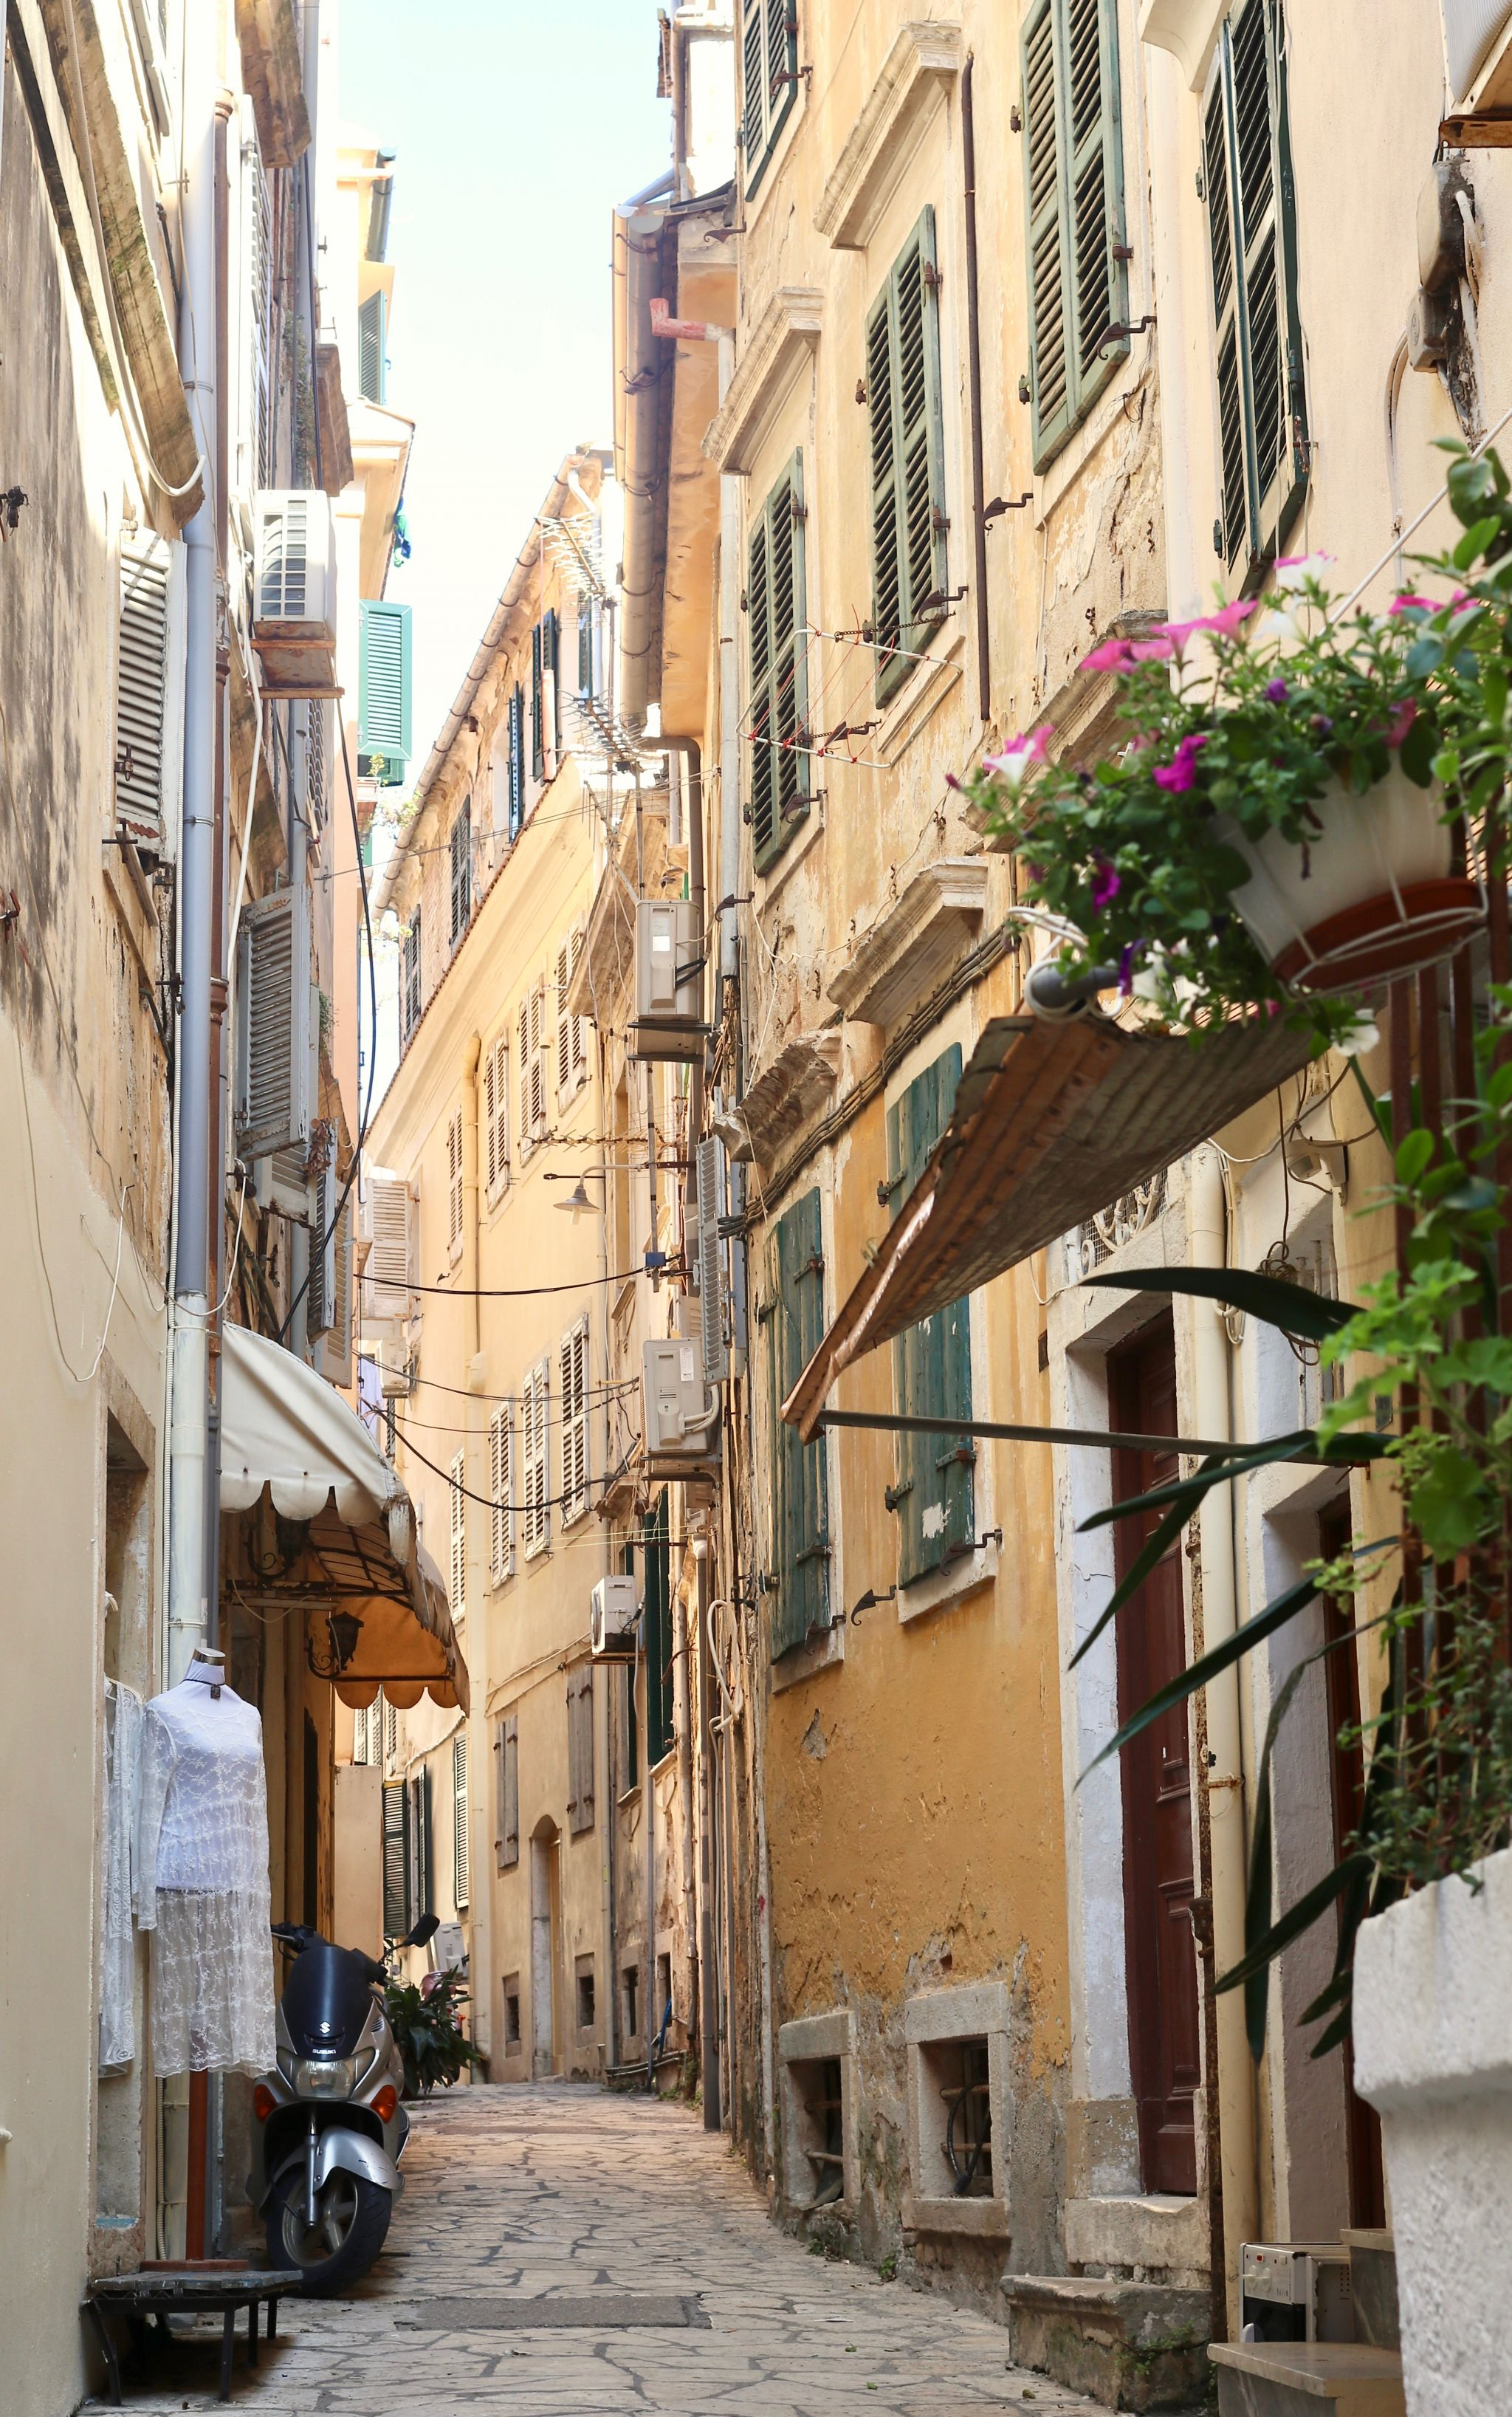 Corfu town street view 2 | Corfu travel guide